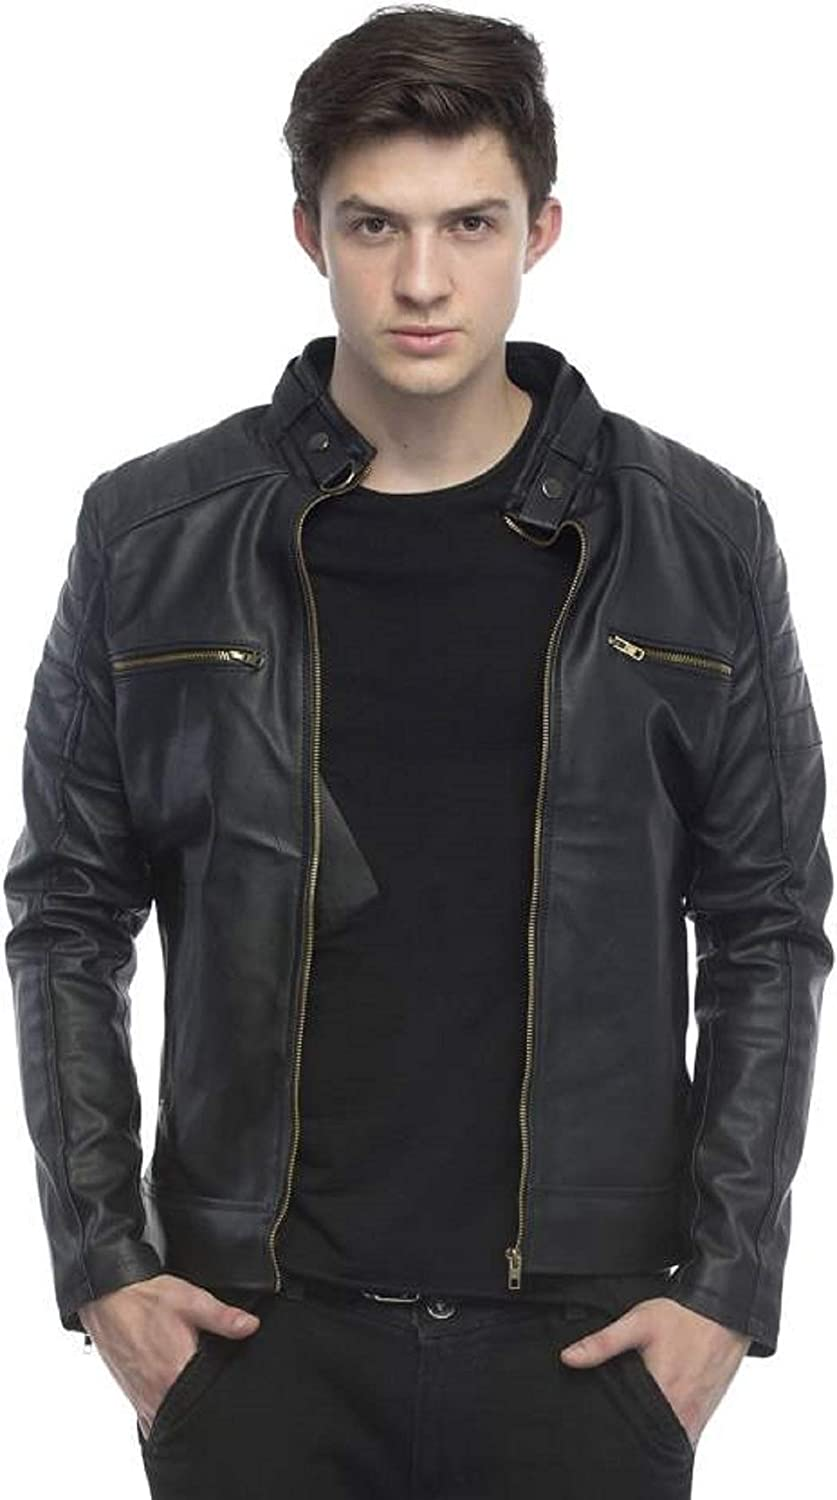 Designer Faux Leather Biker Jacket for Man